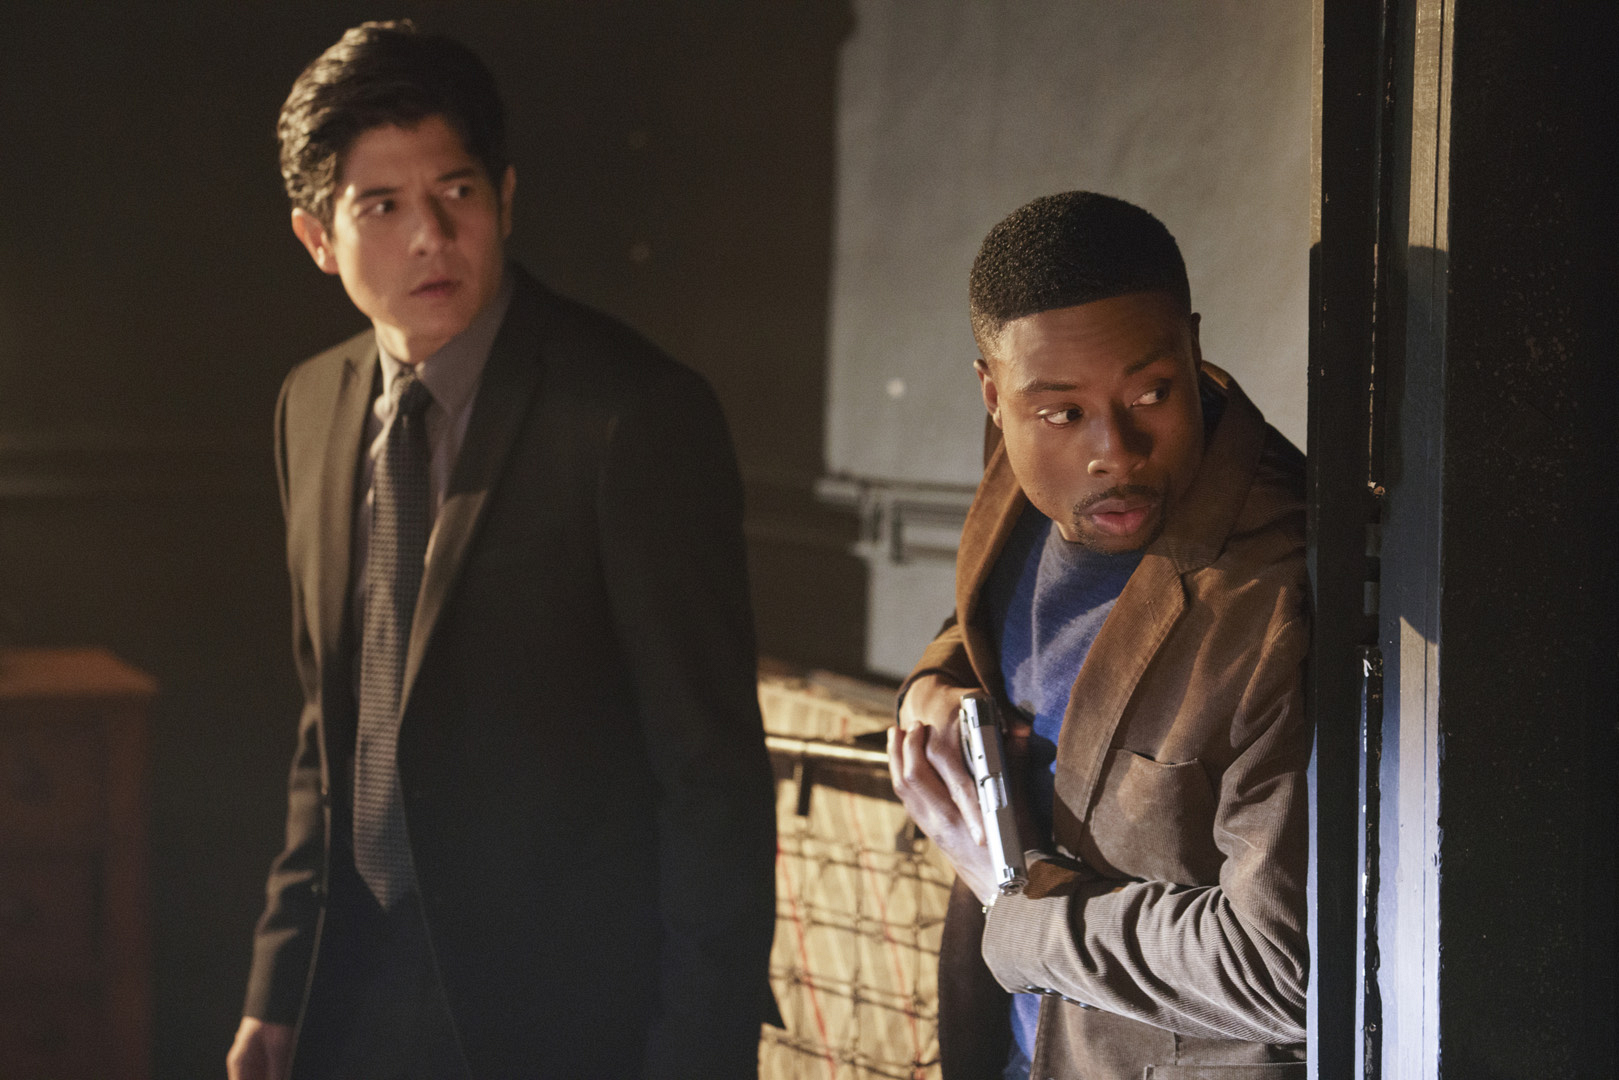 Carter and Lee go undercover as administrators.